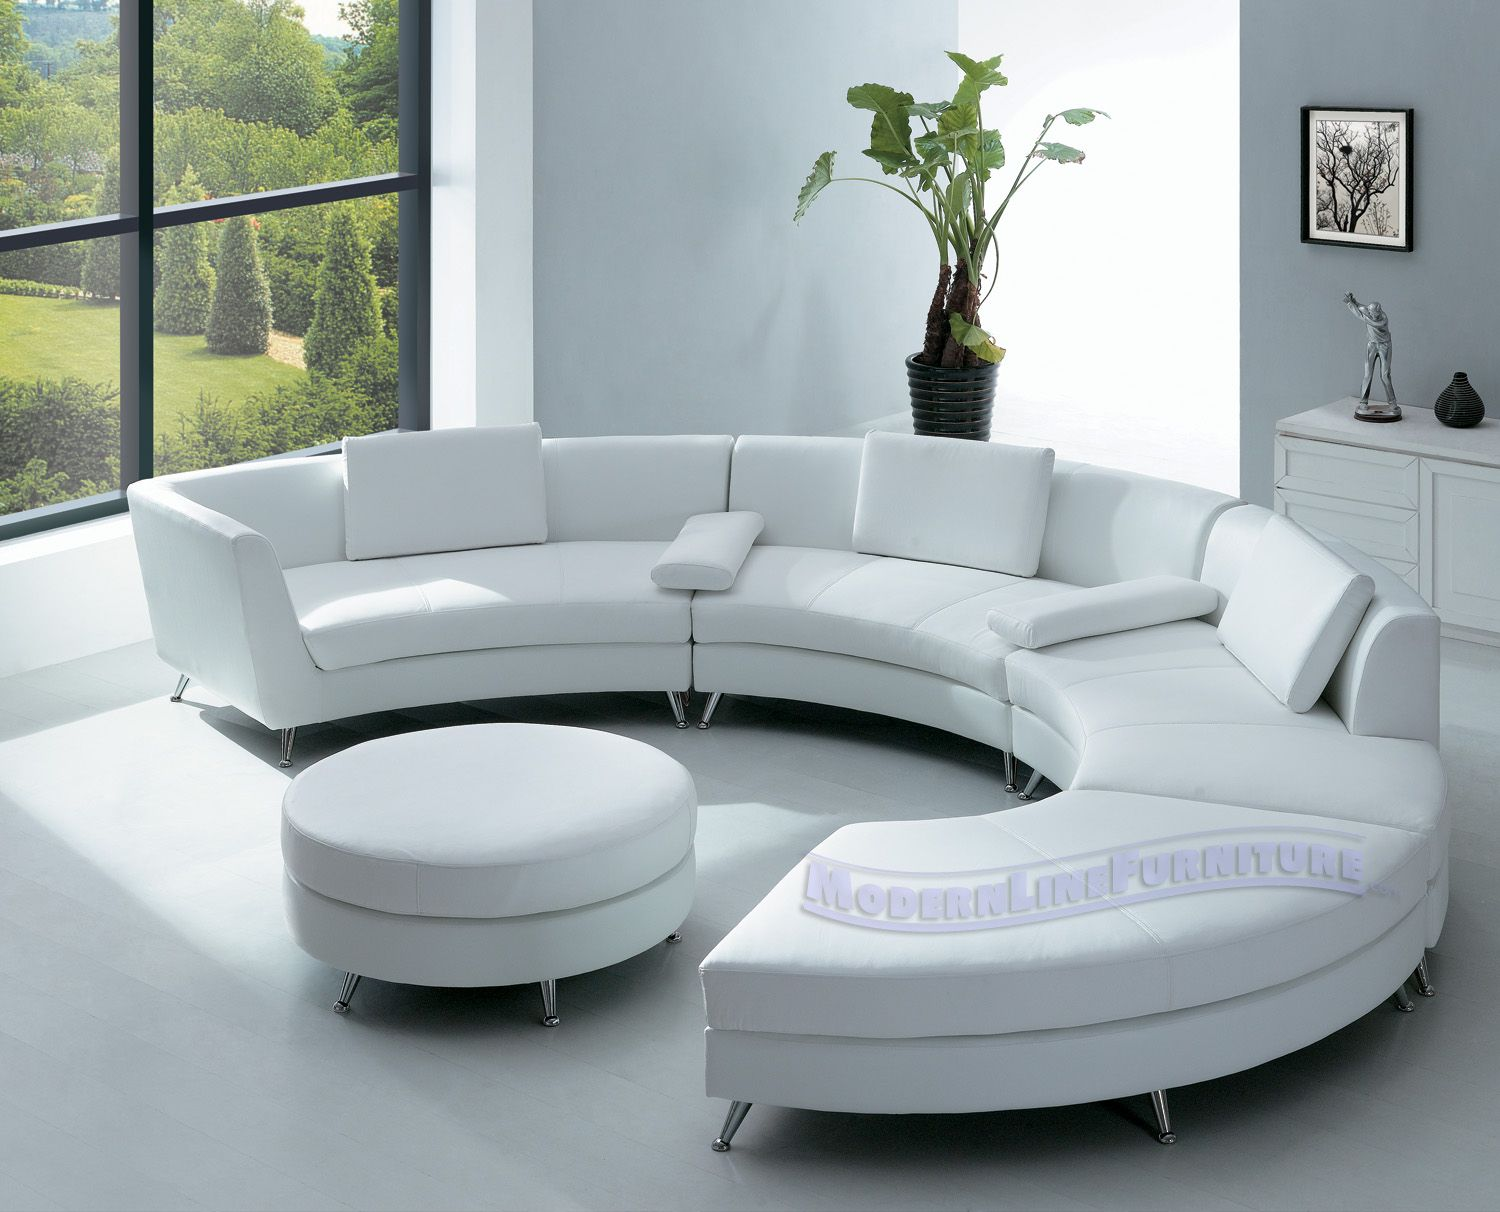 Modern Living Rooms Furniture Room Furniture With Elegant Half Circle Sofa Home Interior Designs